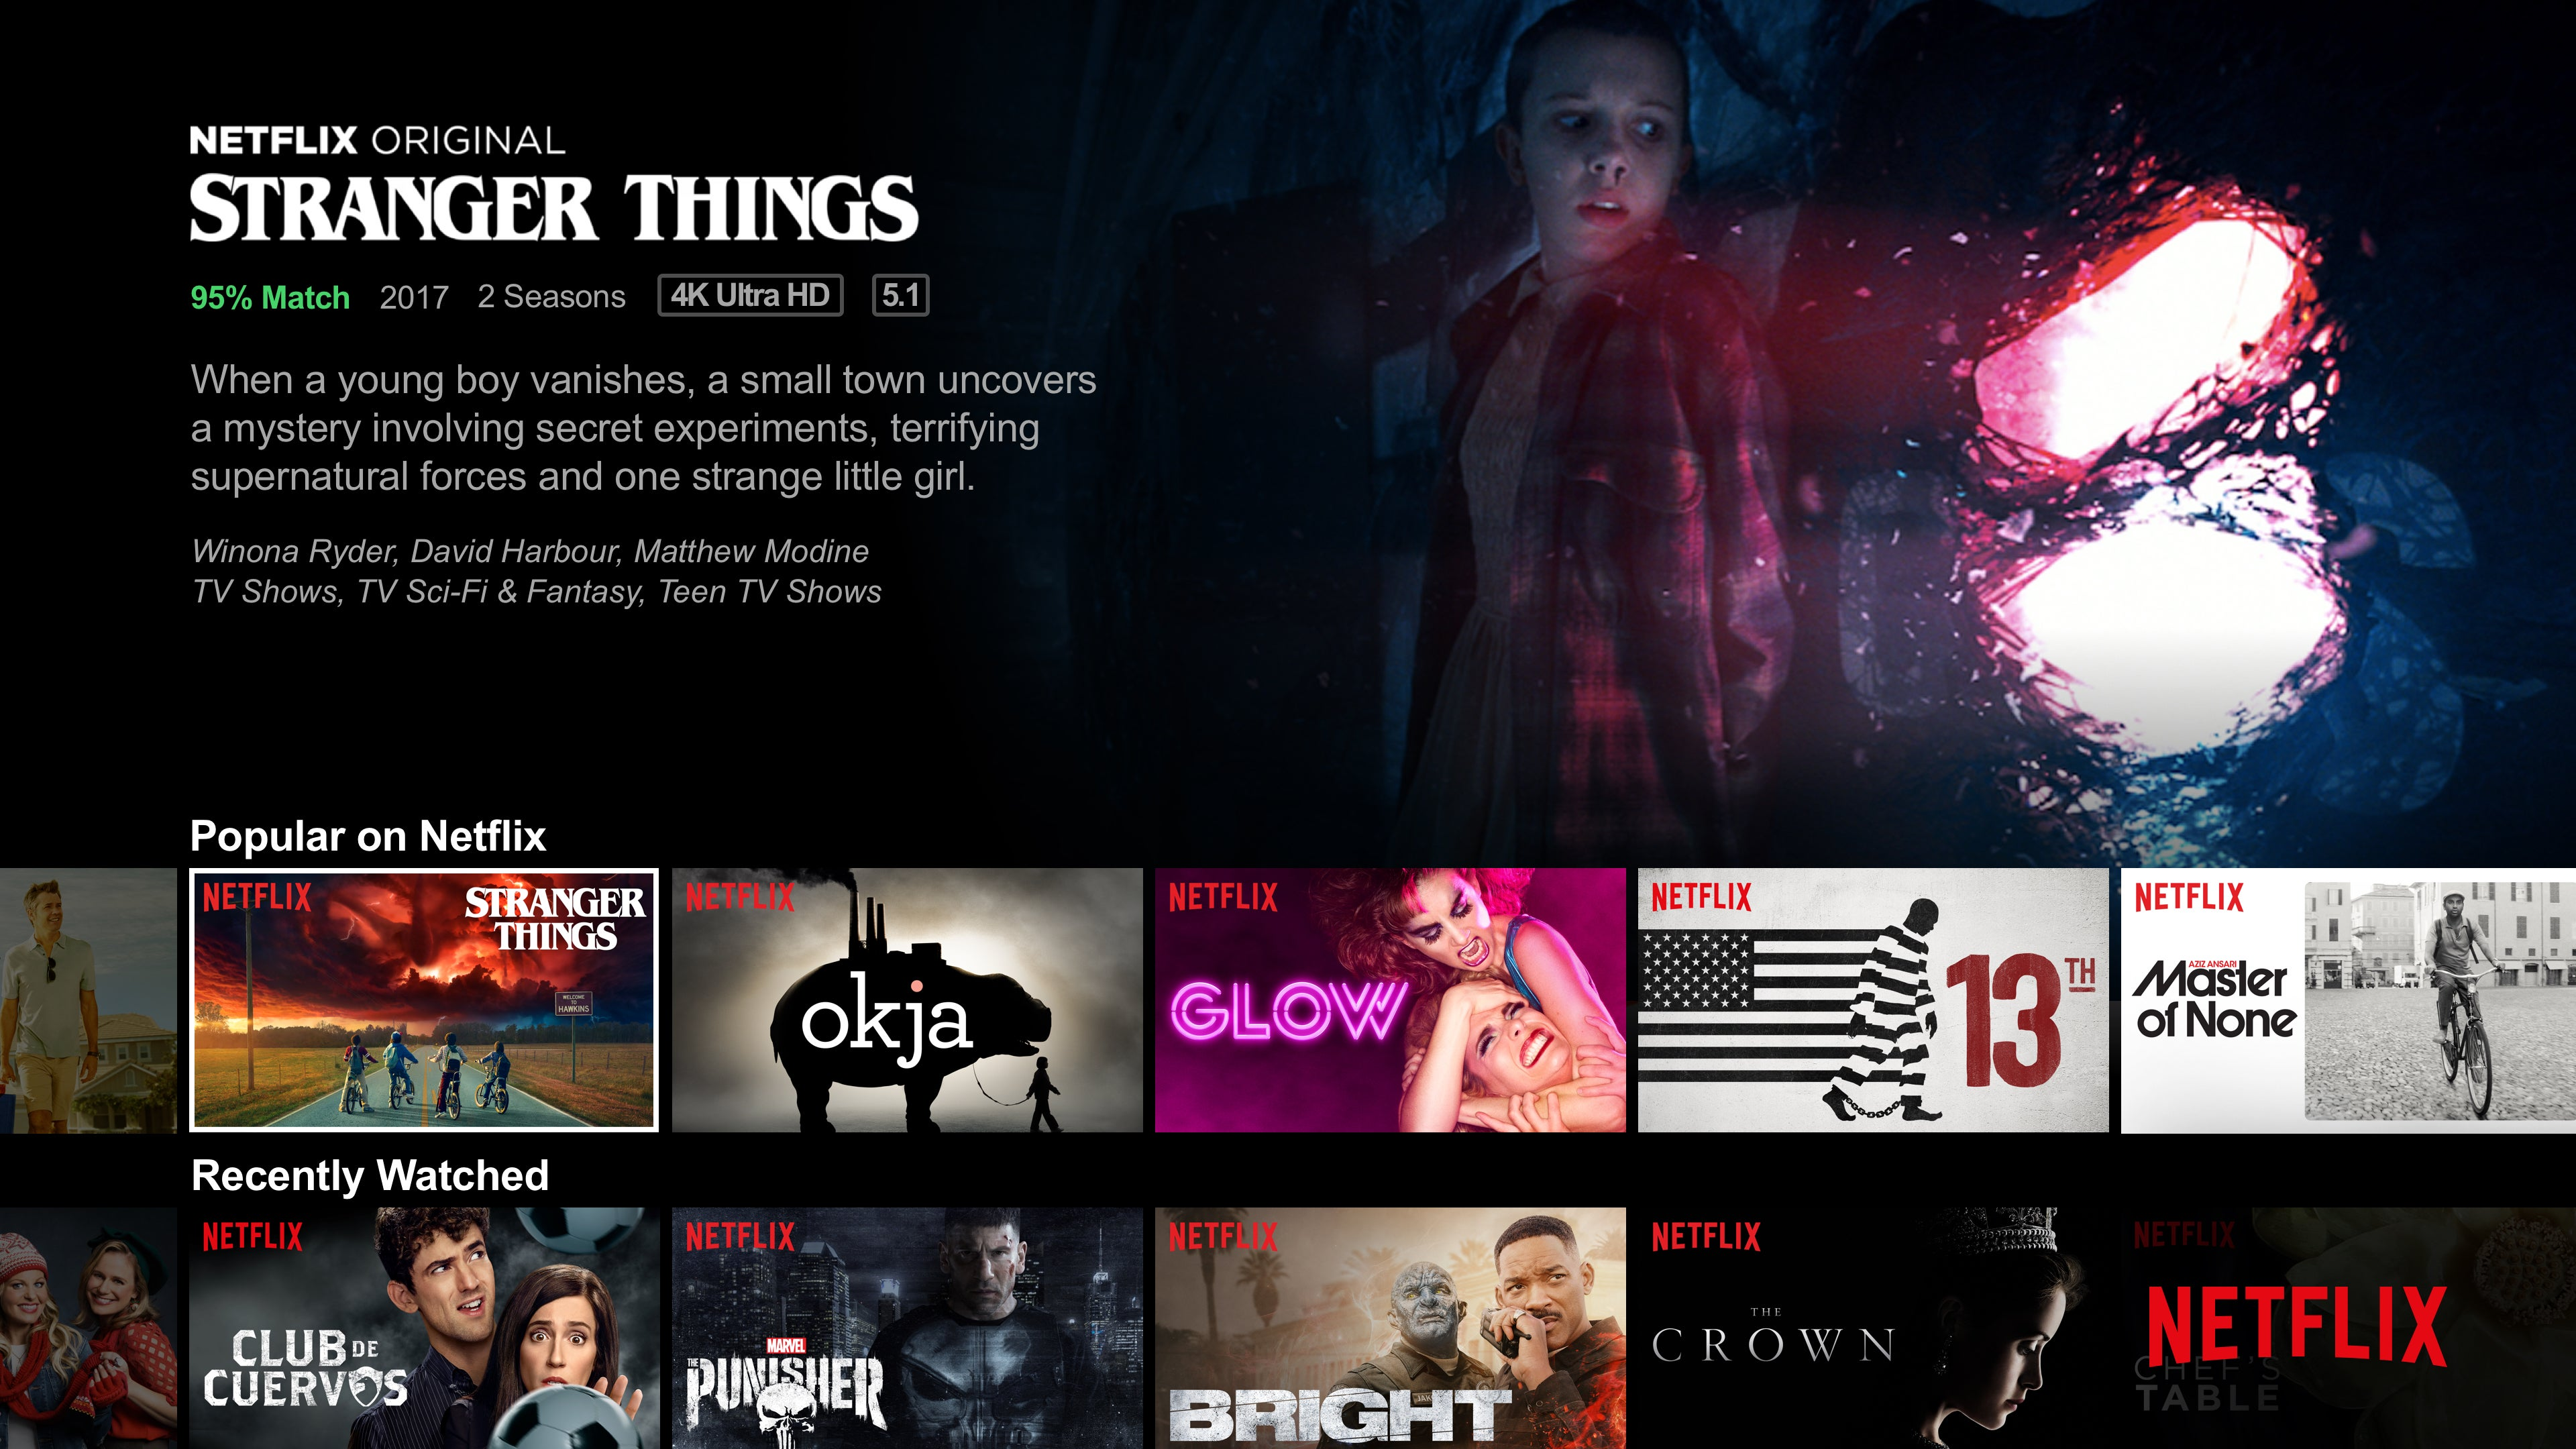 A Netflix content screen for Stranger Things